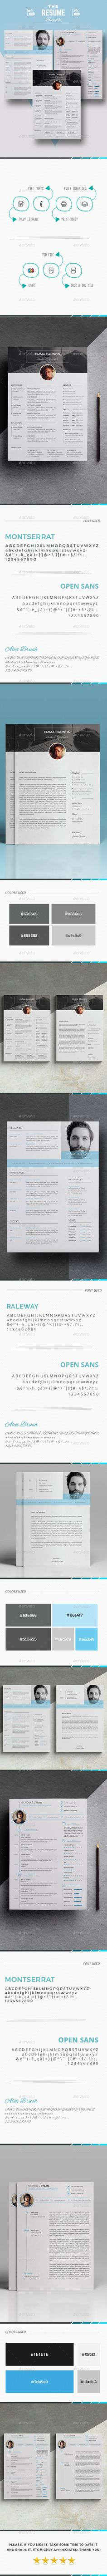 The Bundle Resume Template #design #210x297  • Download here → https://graphicriver.net/item/the-bundle-resume-template/21138464?ref=pxcr